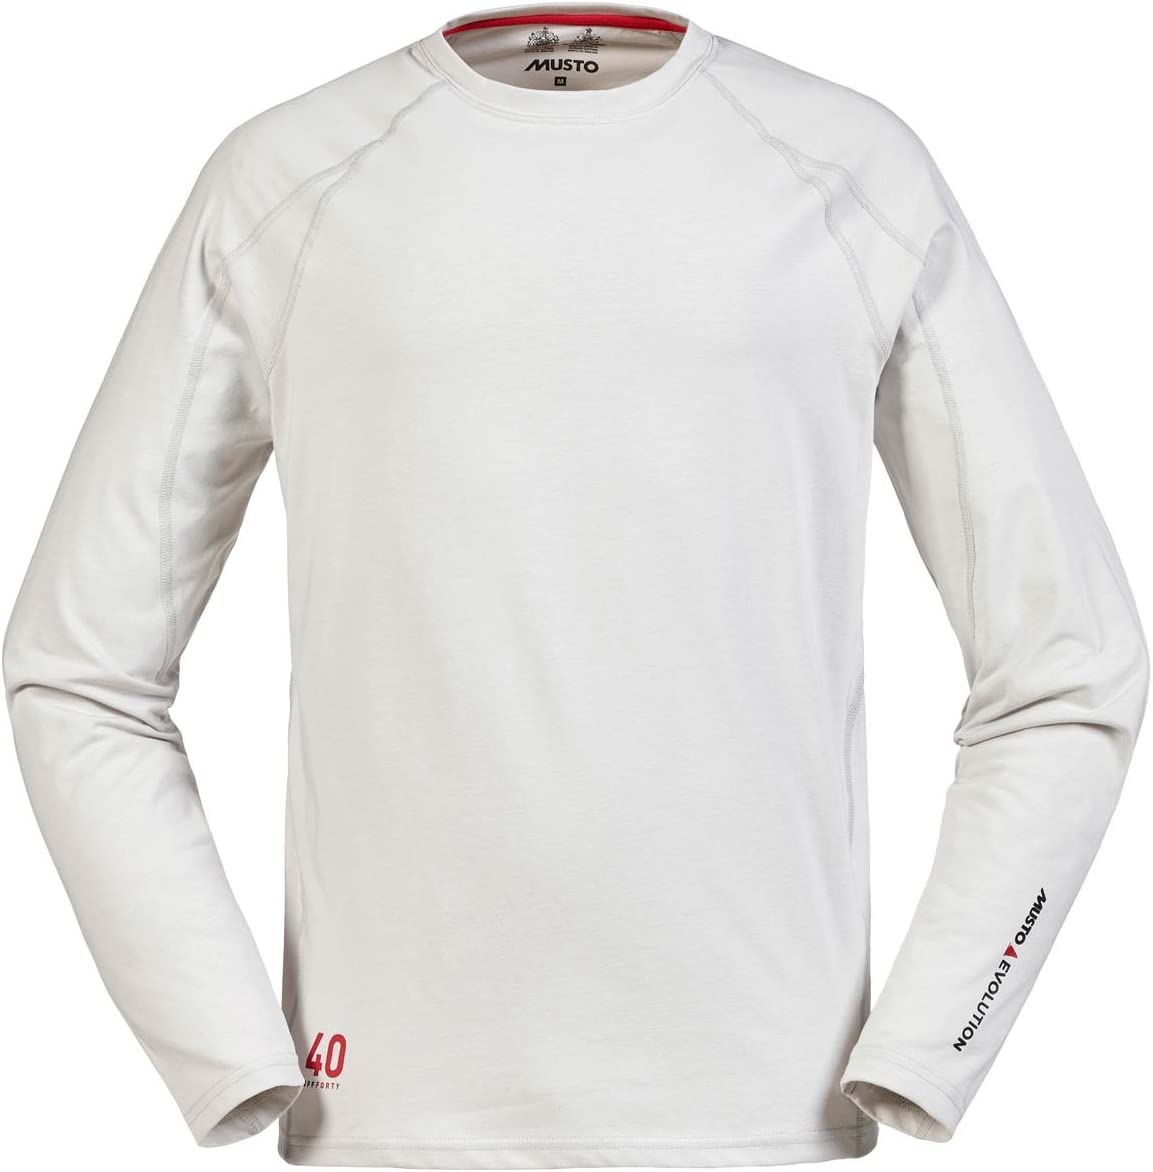 Musto Evolution Sunblock Long Sleeve T-Shirt - Platinum XS: Amazon.es: Deportes y aire libre